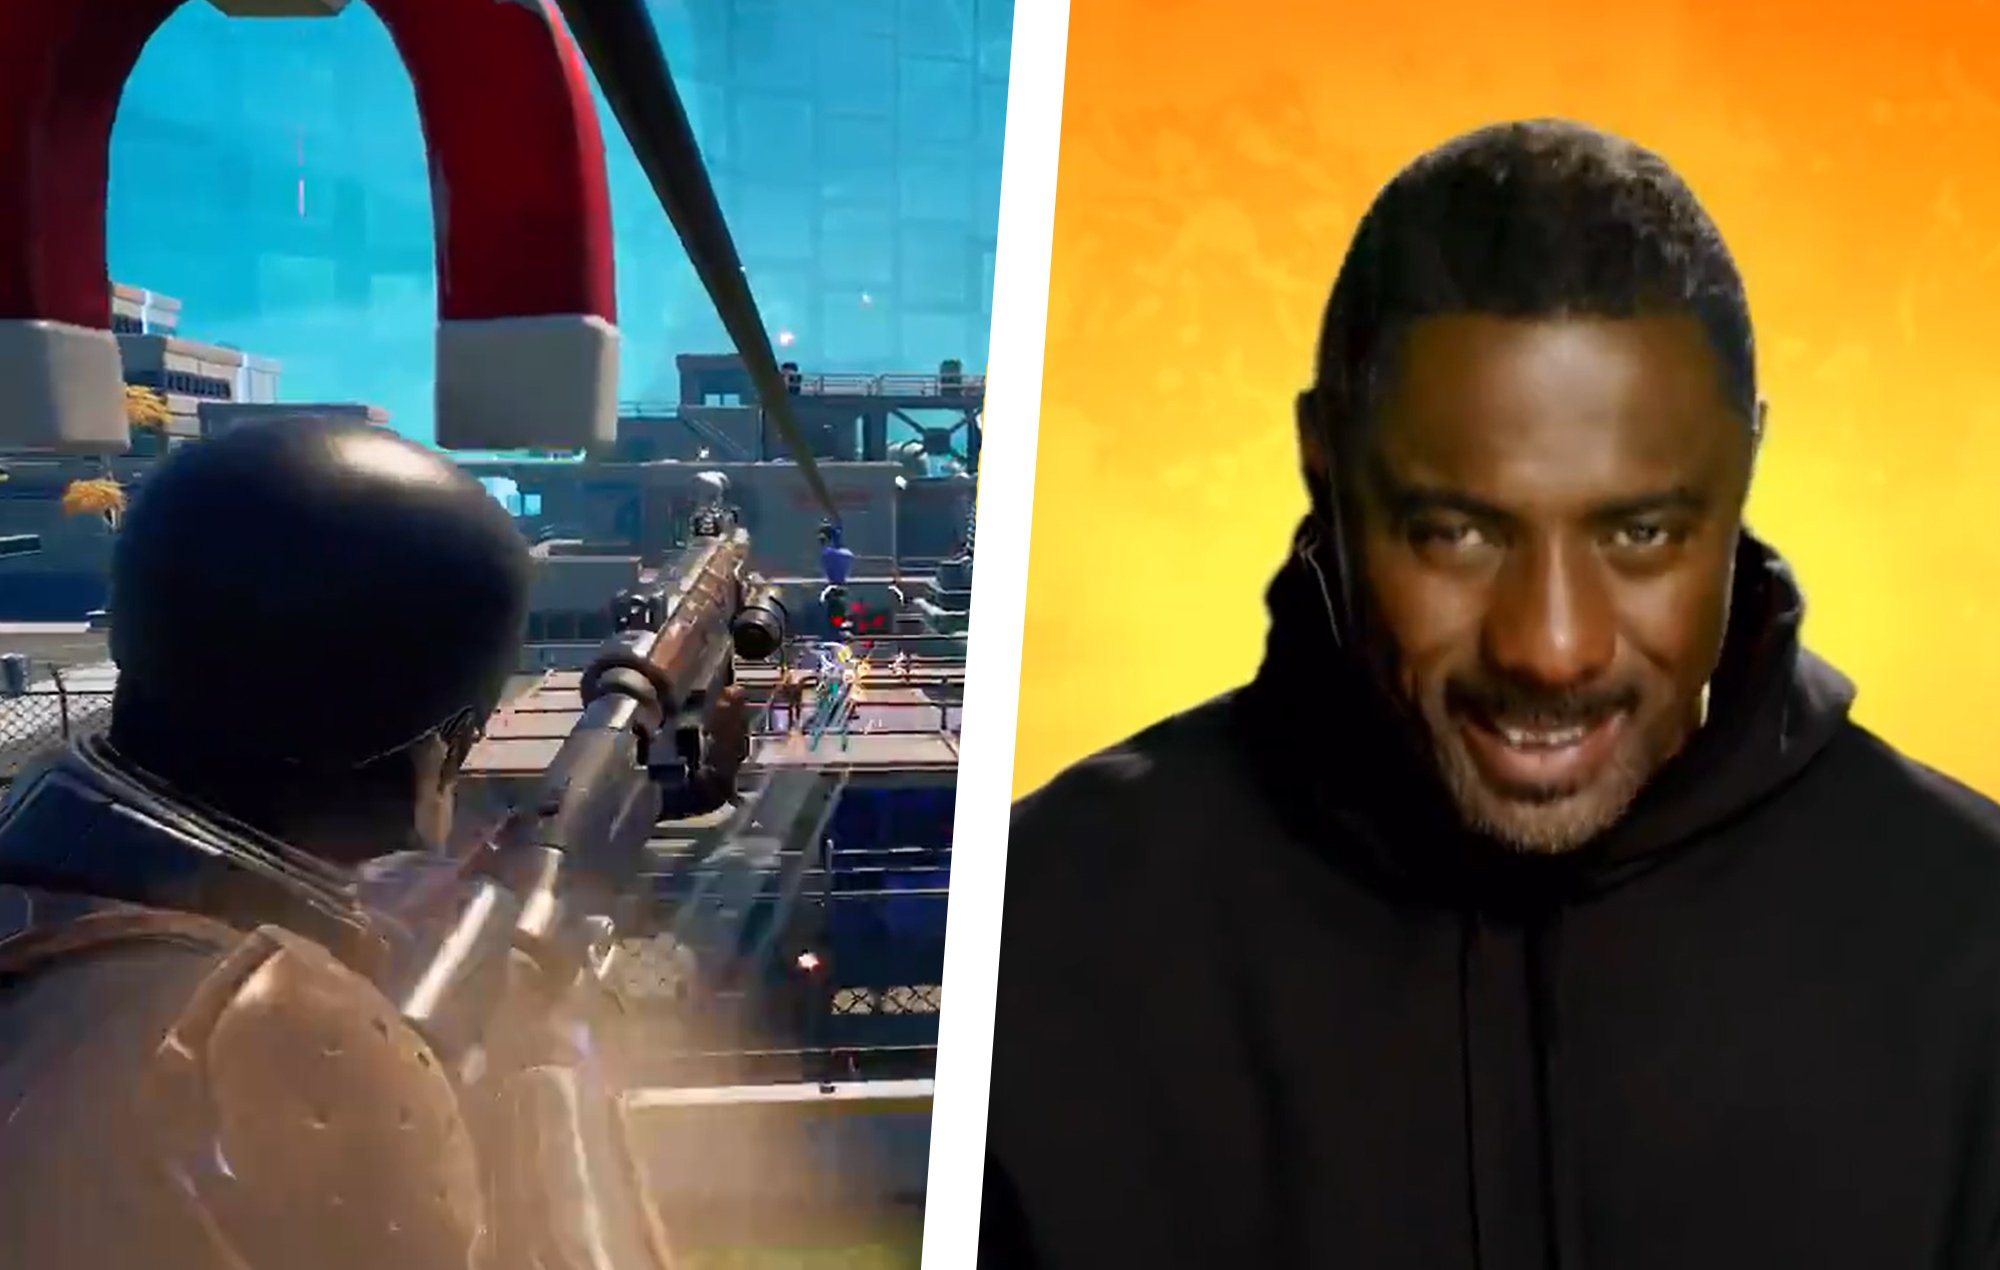 Idris Elba's 'The Suicide Squad' character coming to 'Fortnite'